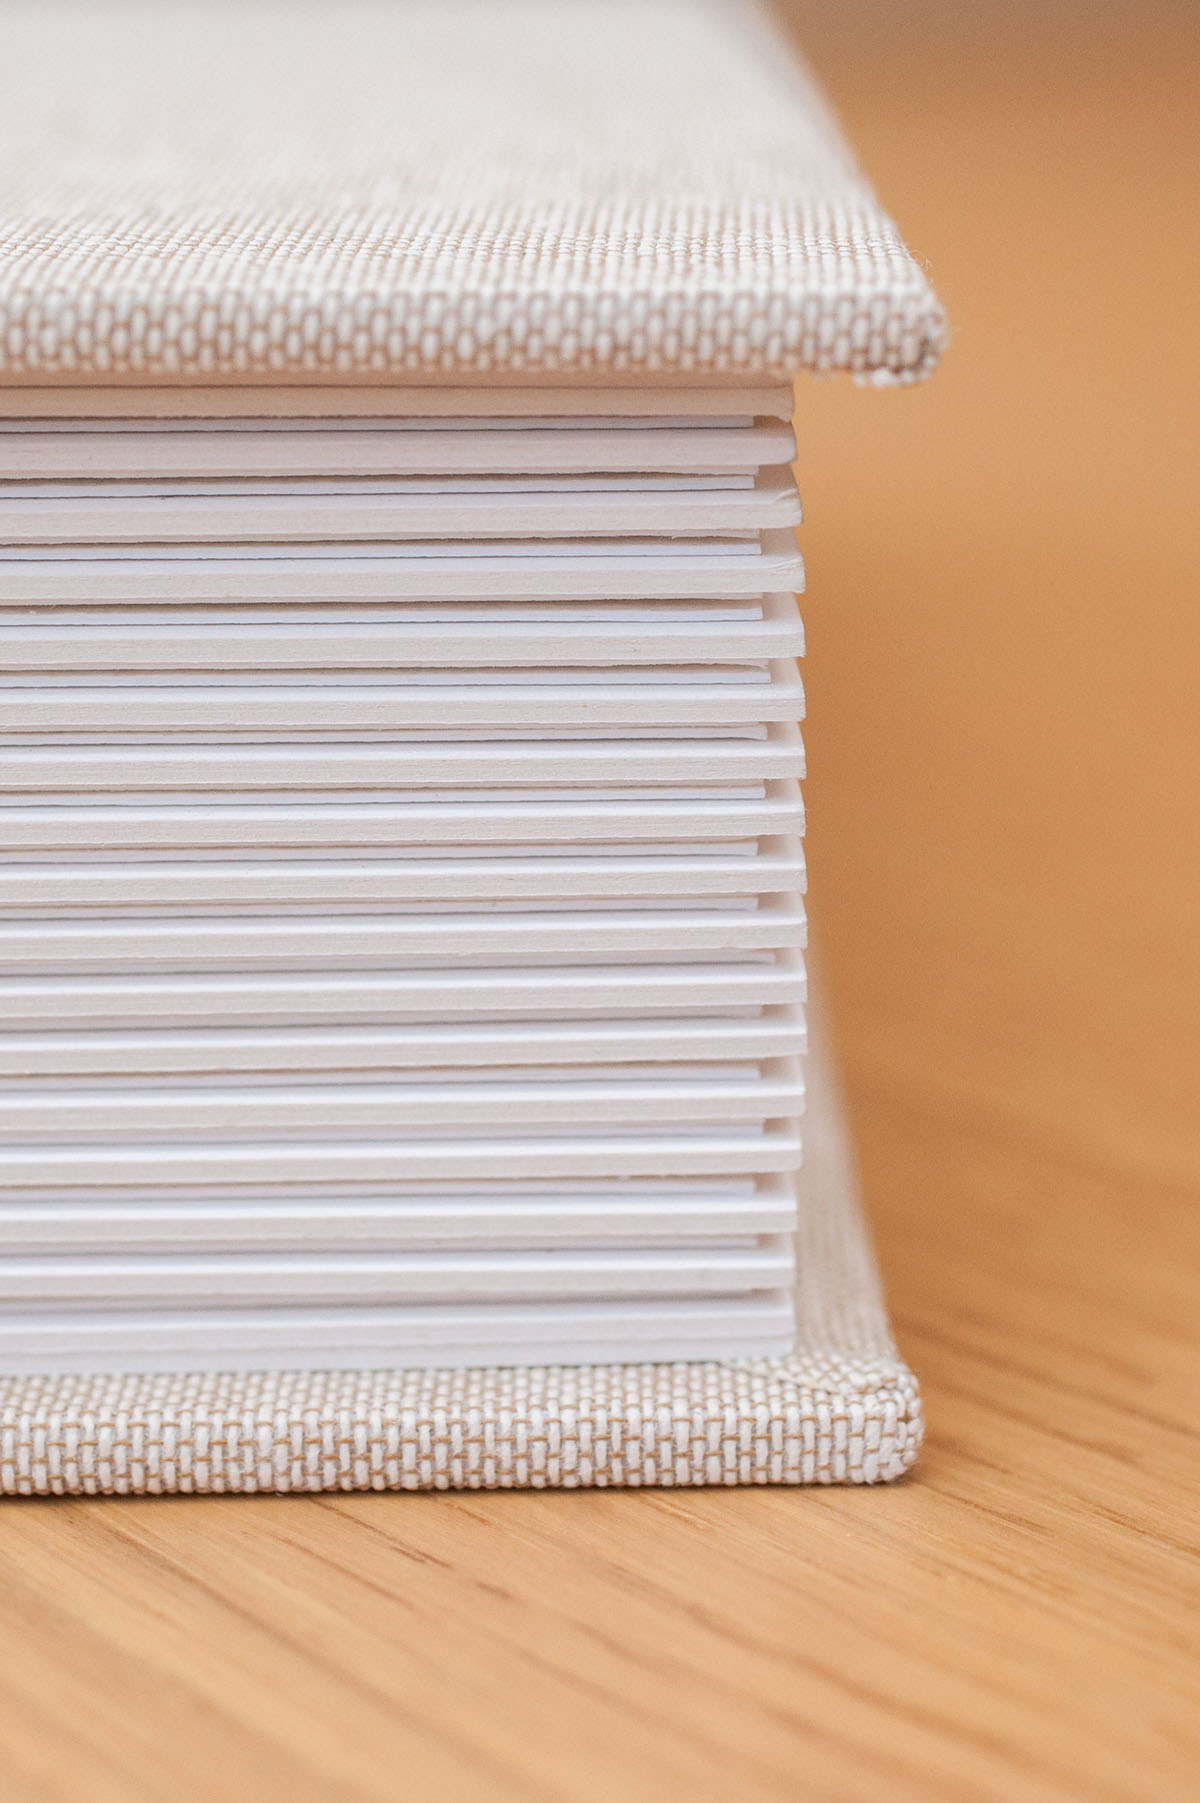 Detailed photo showing a side on view of a luxury matted wedding album, with the pages closed, and an oatmeal linen cover.